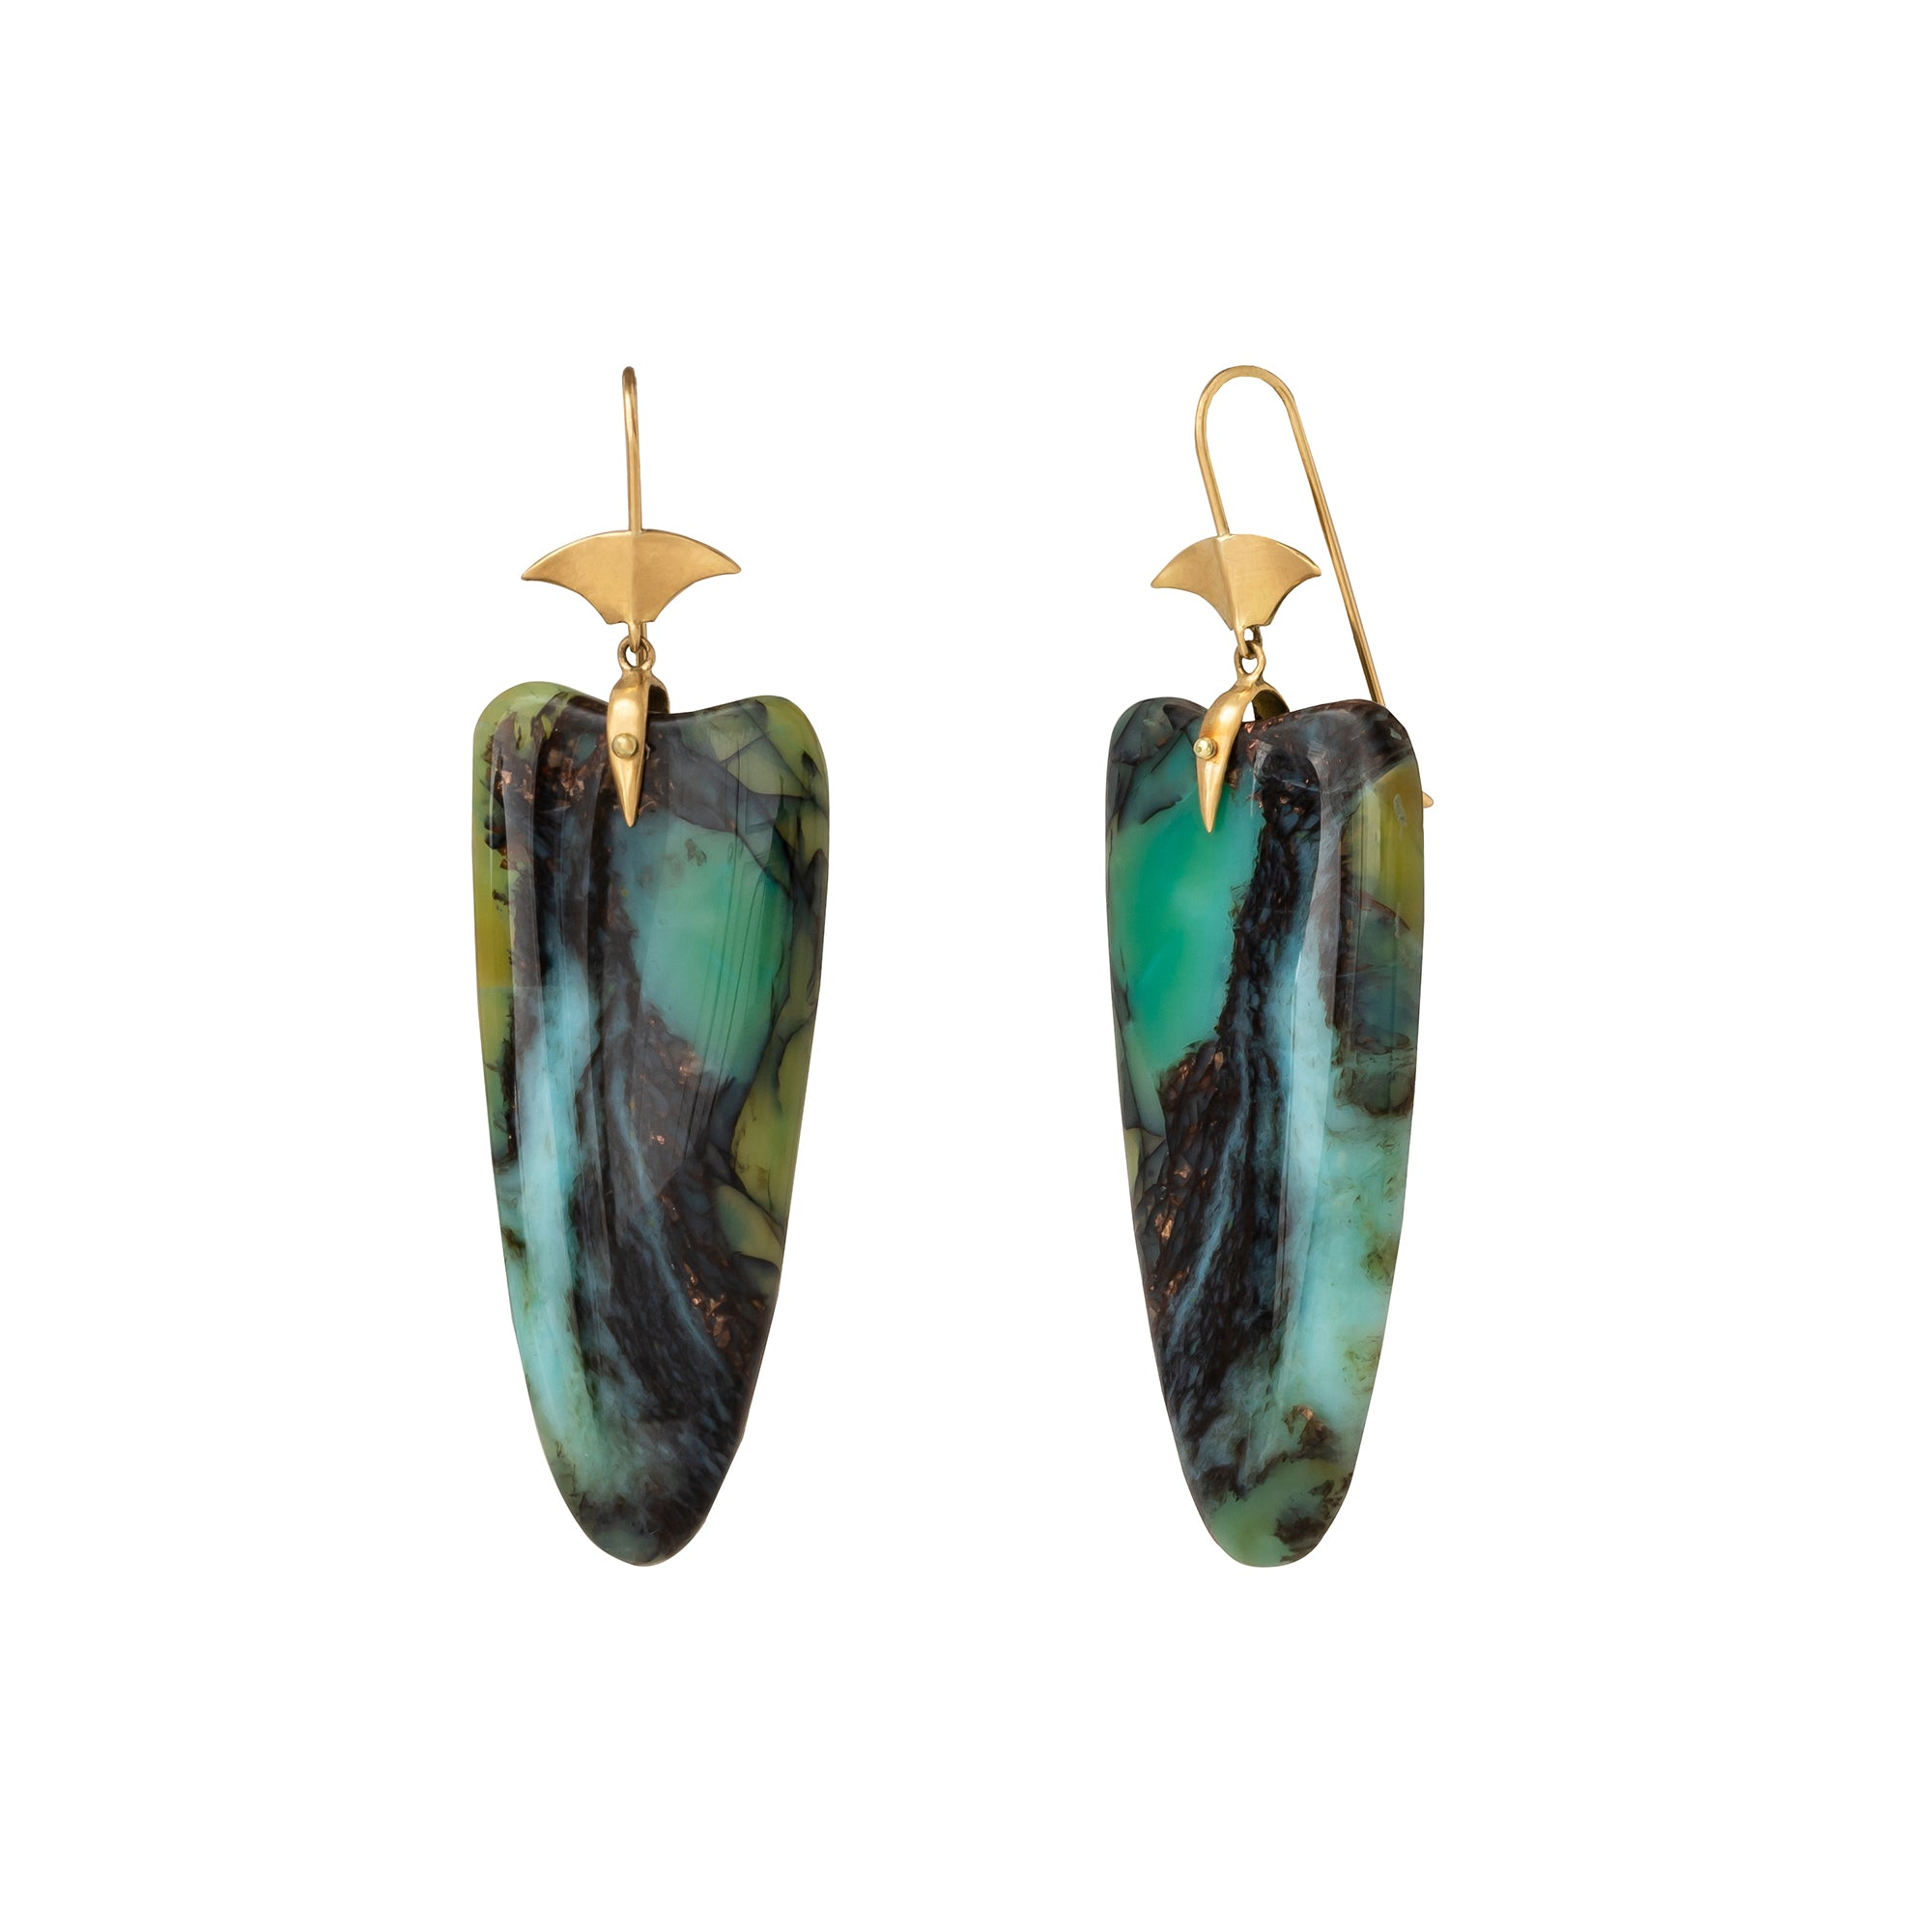 Indonesian Opalized Wood Arrowhead Drop Earrings  - Annette Ferdinansen - Earrings | Broken English Jewelry